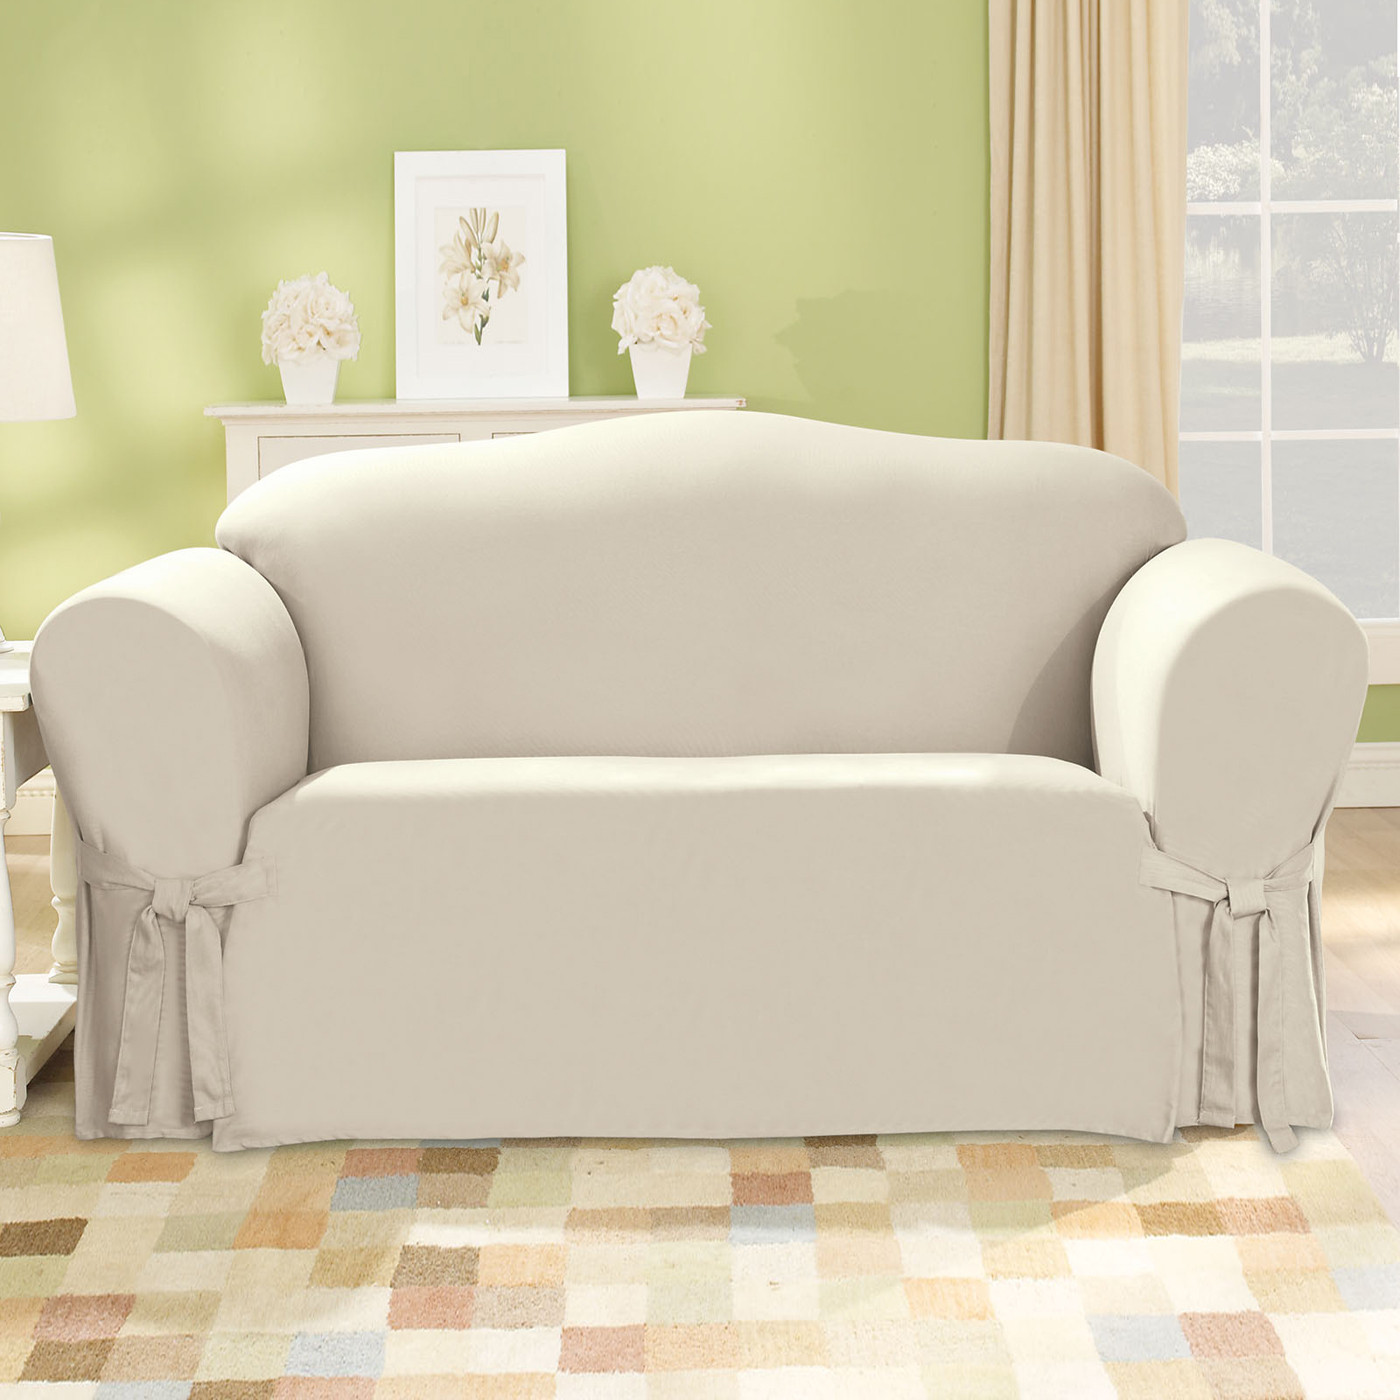 Best ideas about Bed Bath And Beyond Sofa Covers . Save or Pin Bed Bath Beyond Sofa Covers Sofa Covers Furniture Now.